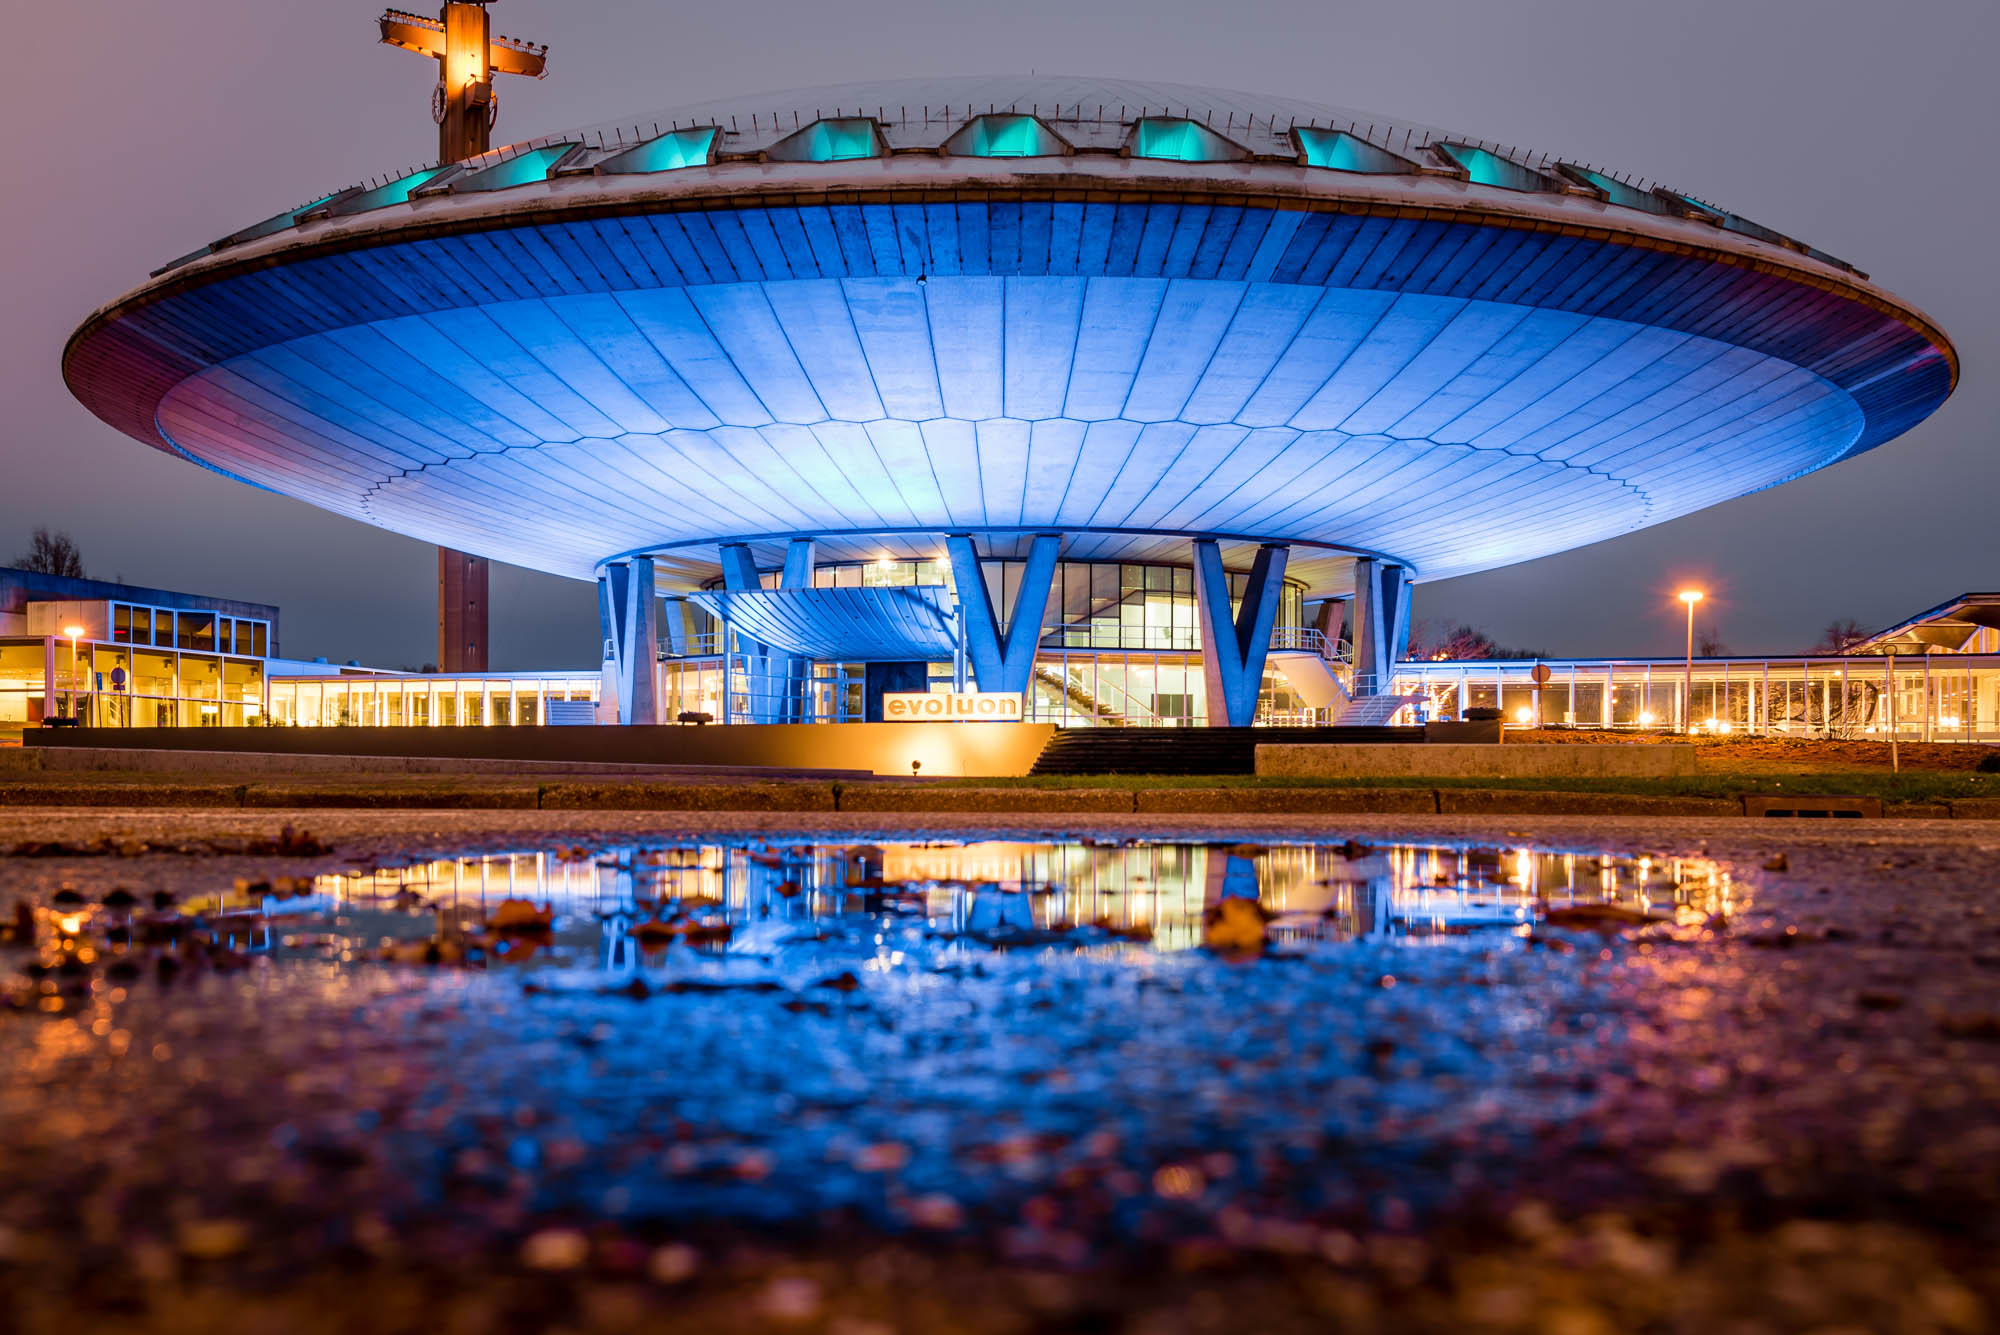 The Evoluon in Eindhoven, Netherlands, photographed from a low camera angle